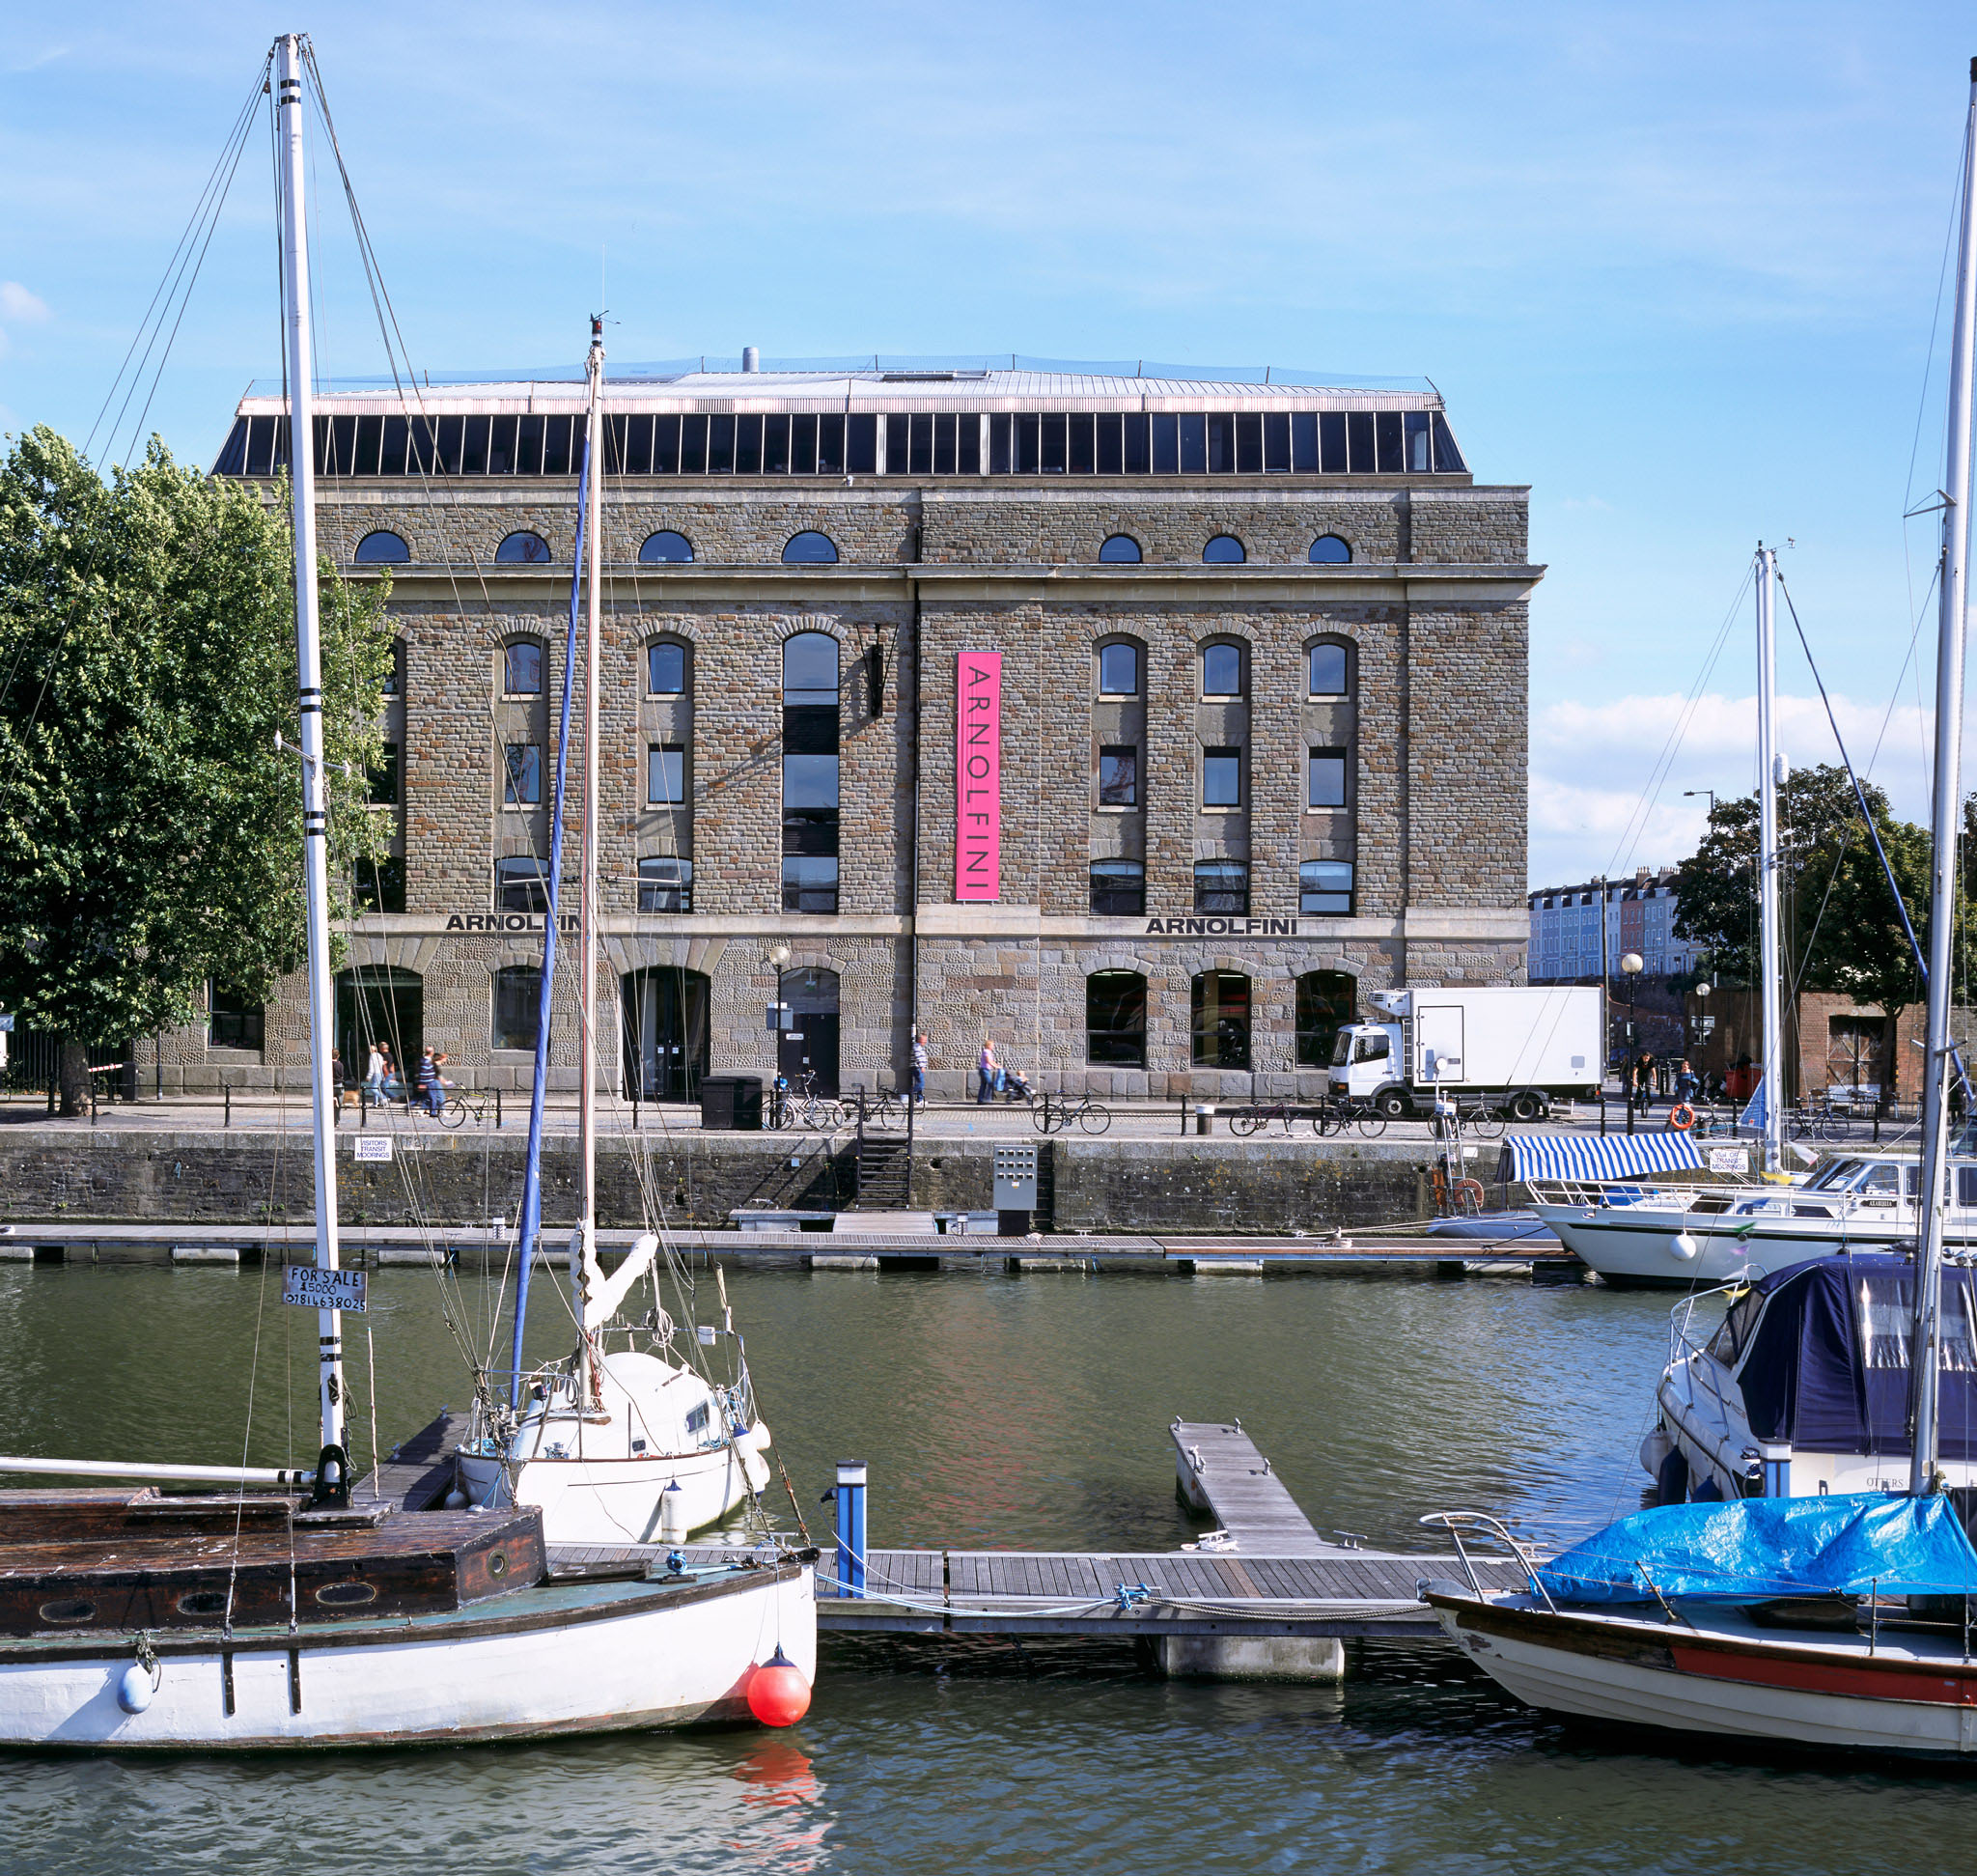 Arnolfini Centre for Contemporary Arts